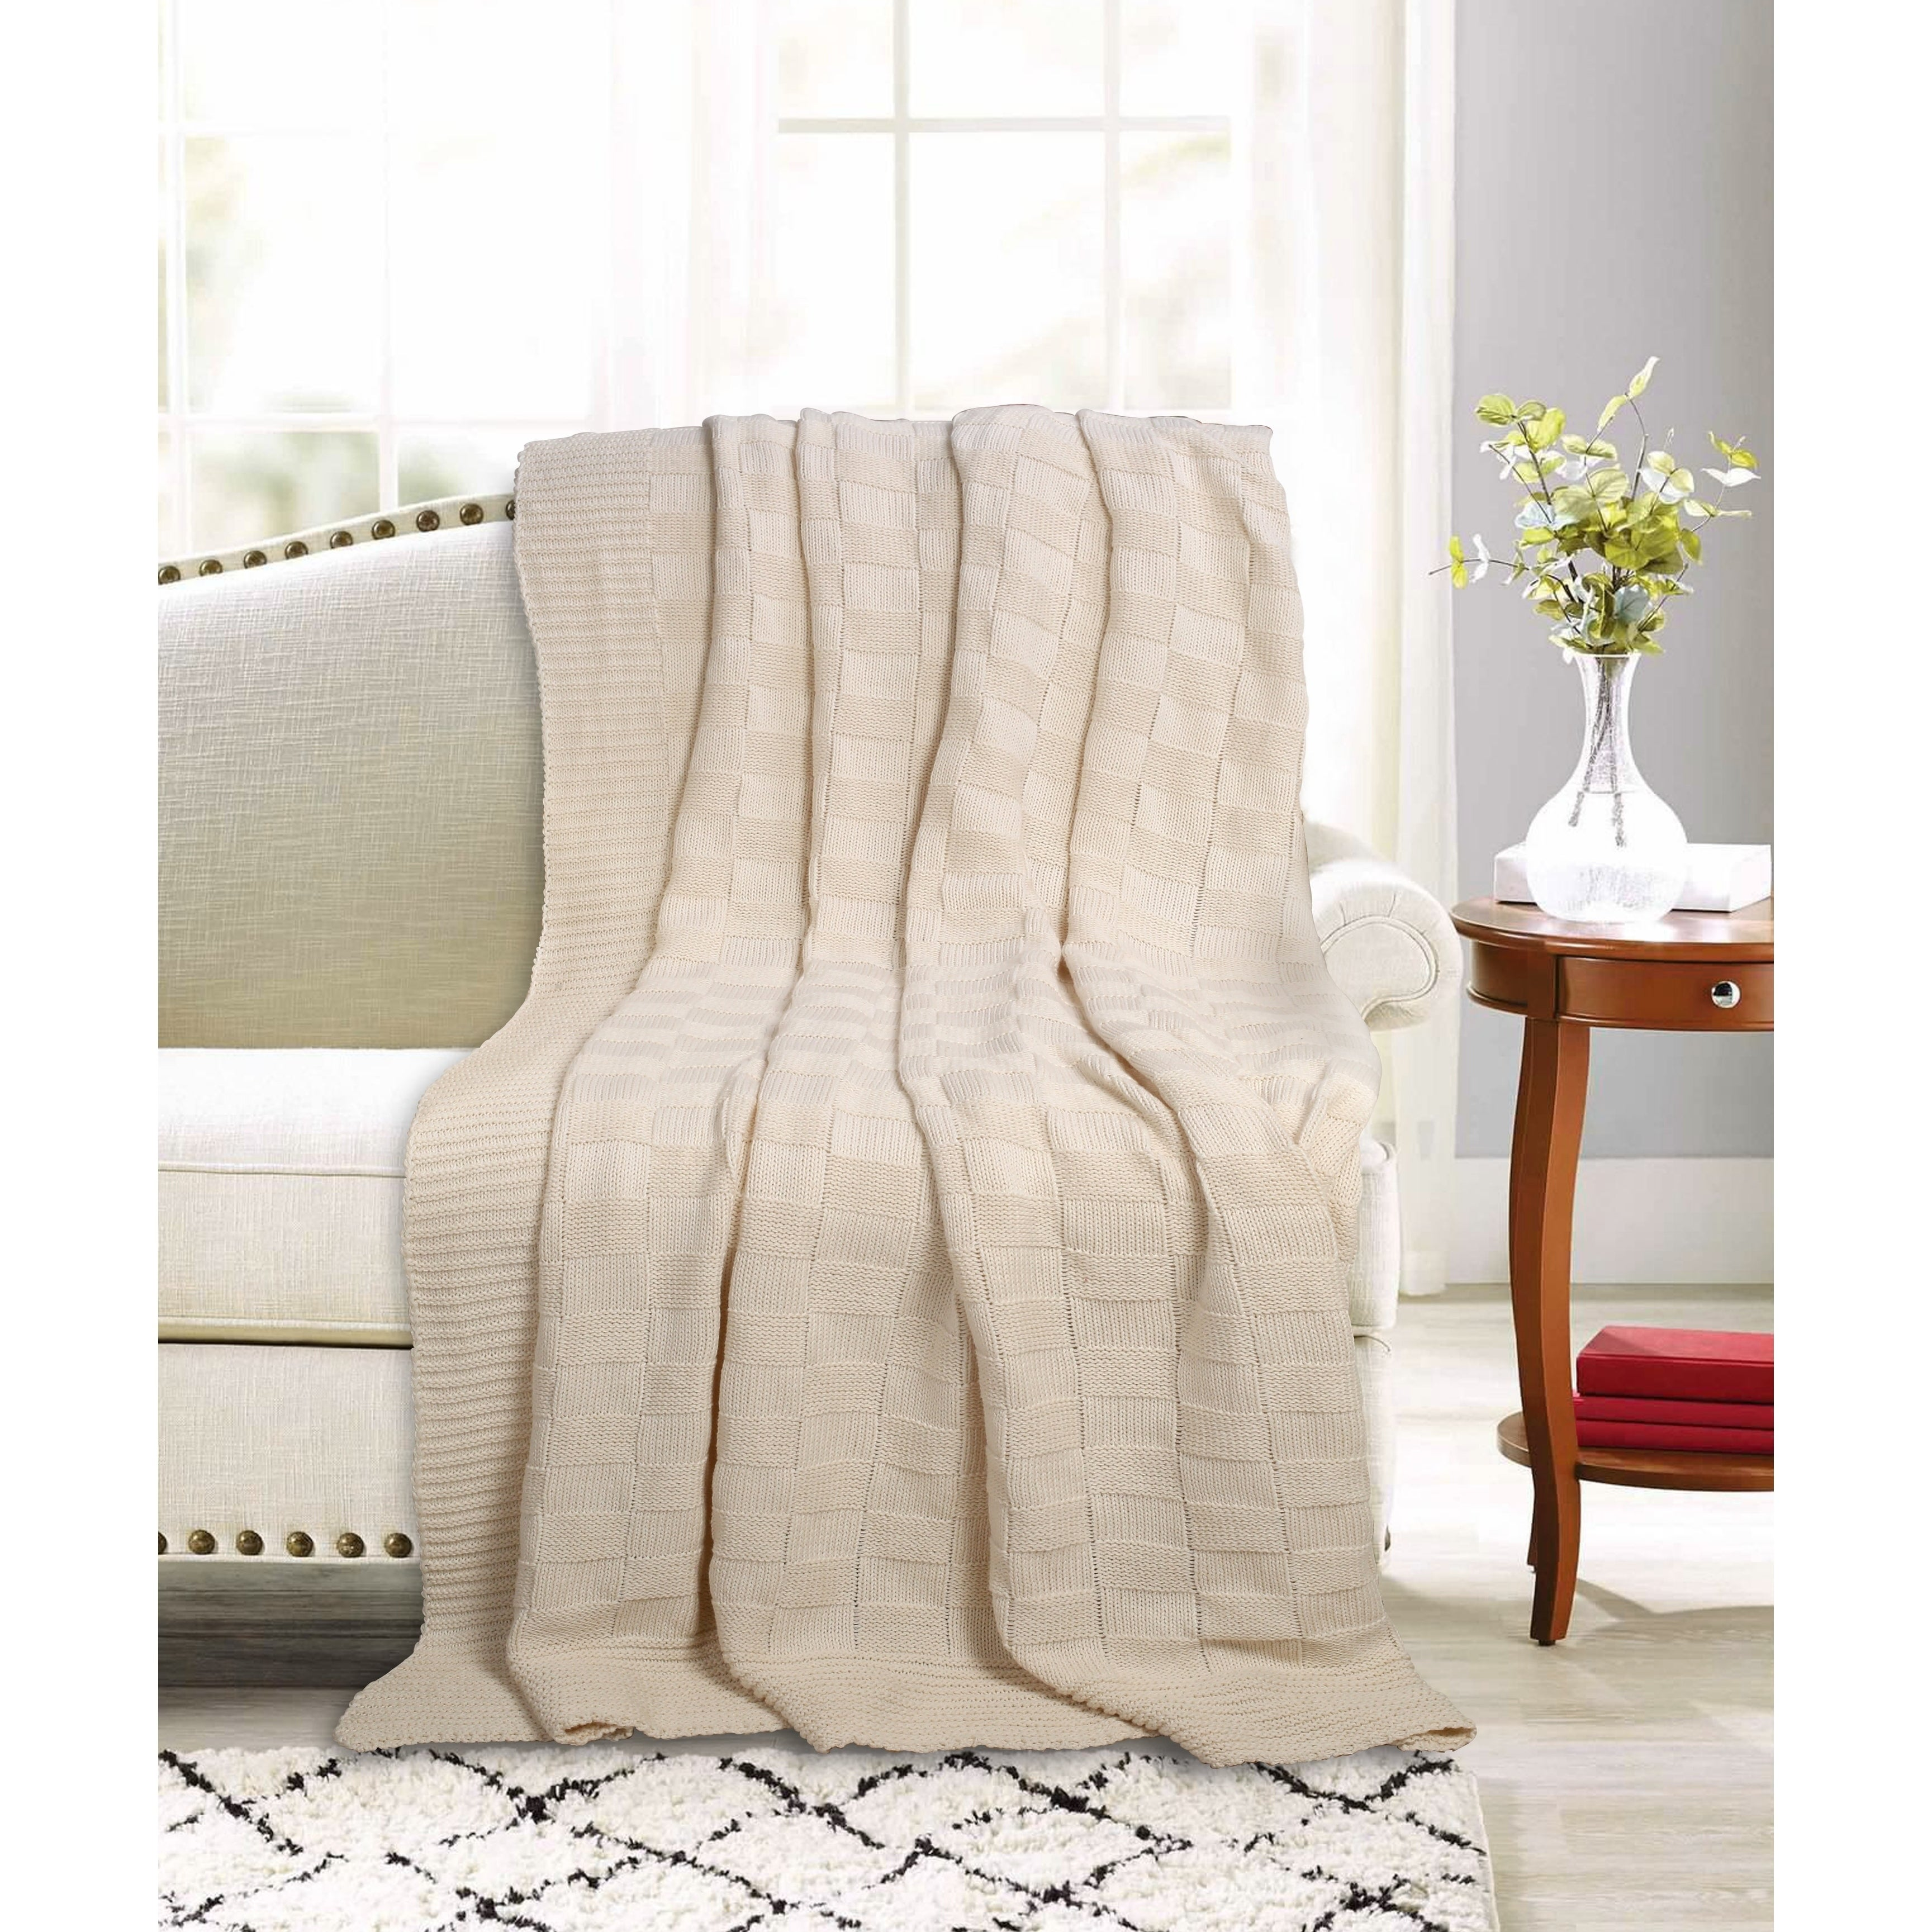 Shop Glamburg Knitted Throw Blanket 50x60 For Couch Sofa Bed